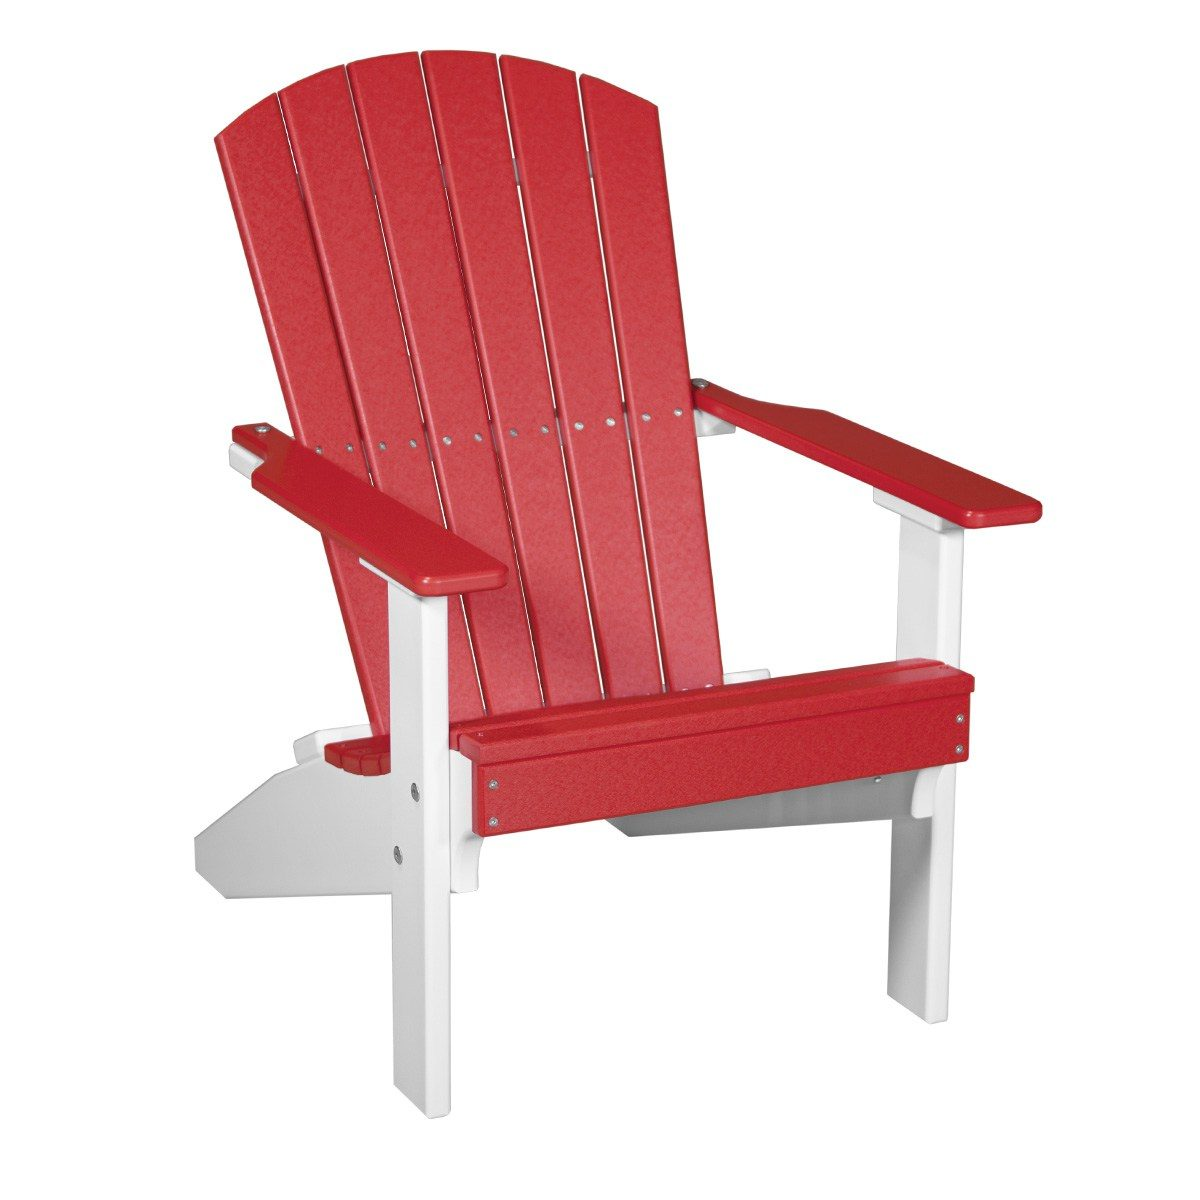 Lakeside Adirondack Chair - Red & White